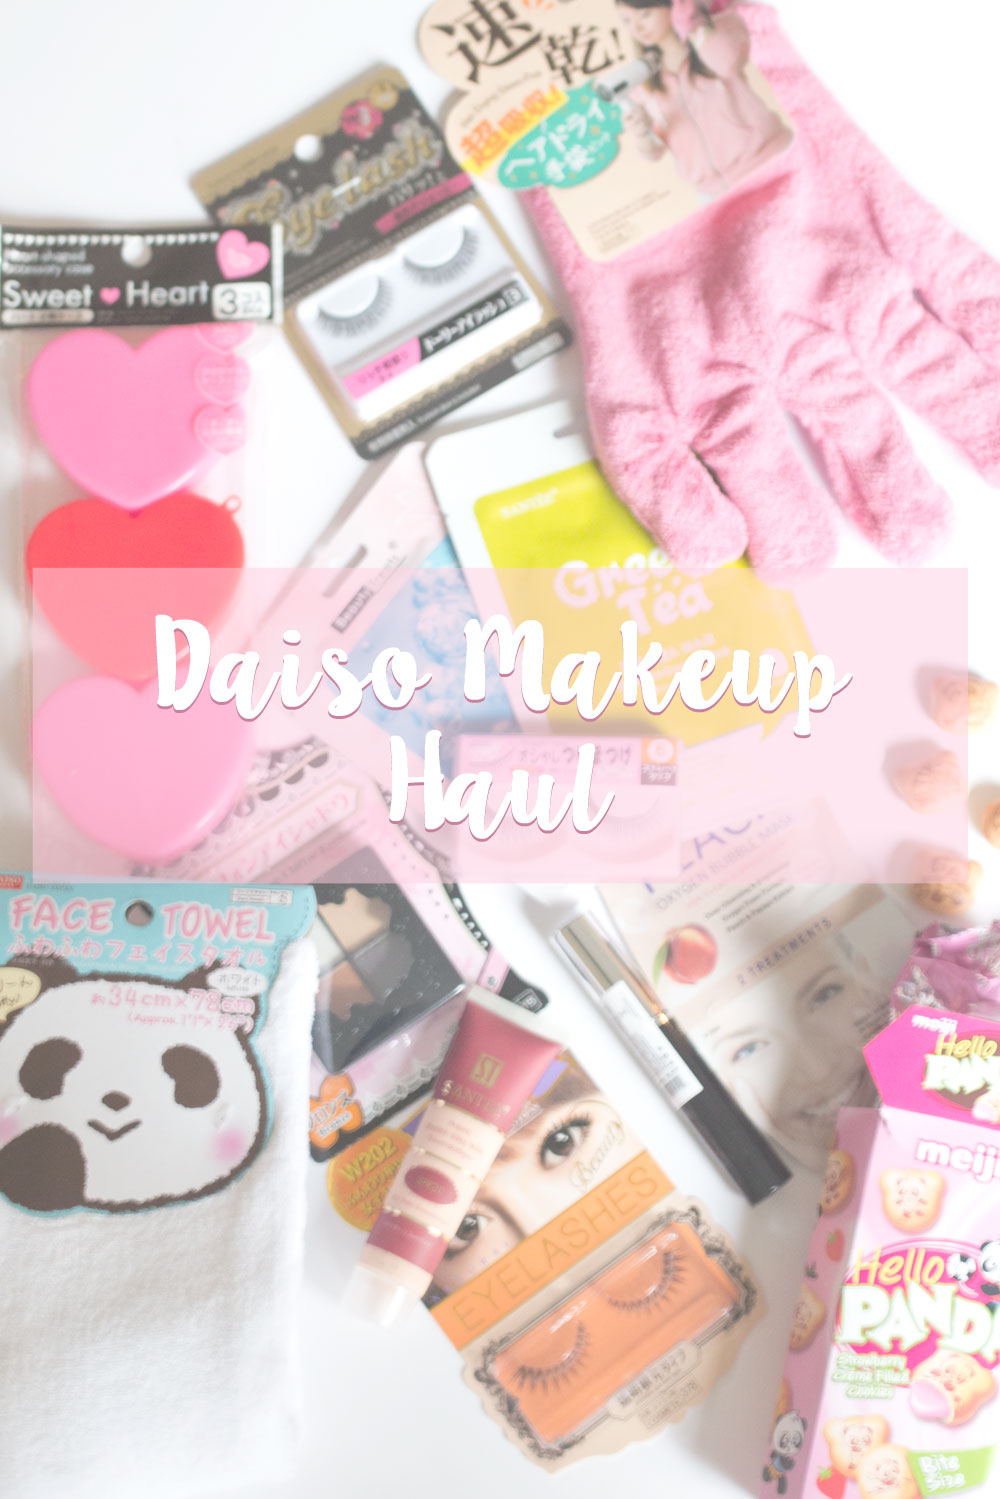 Daiso Makeup Haul & Mini Reviews